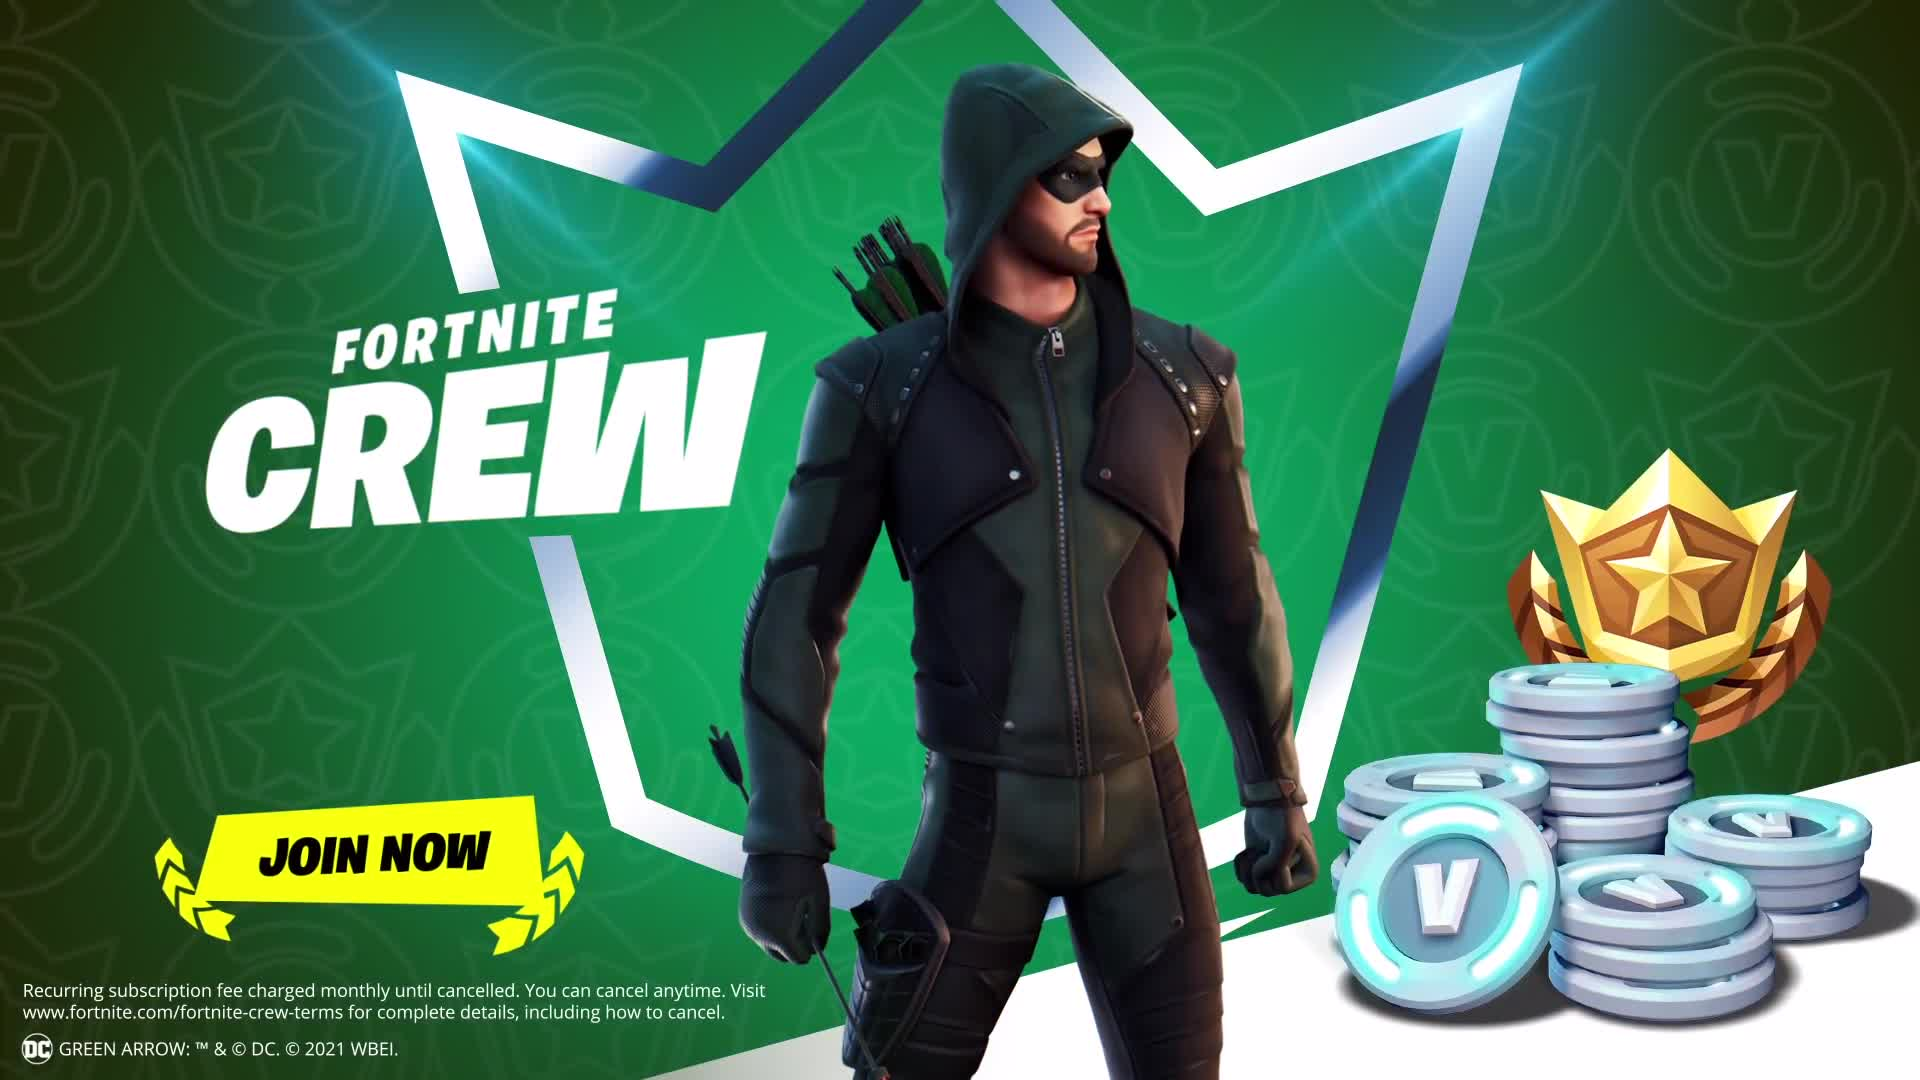 Green Arrow Fortntie : The latest dc comics skin is epic games have confirmed the green arrow fortnite skin will be in the next crew pack.